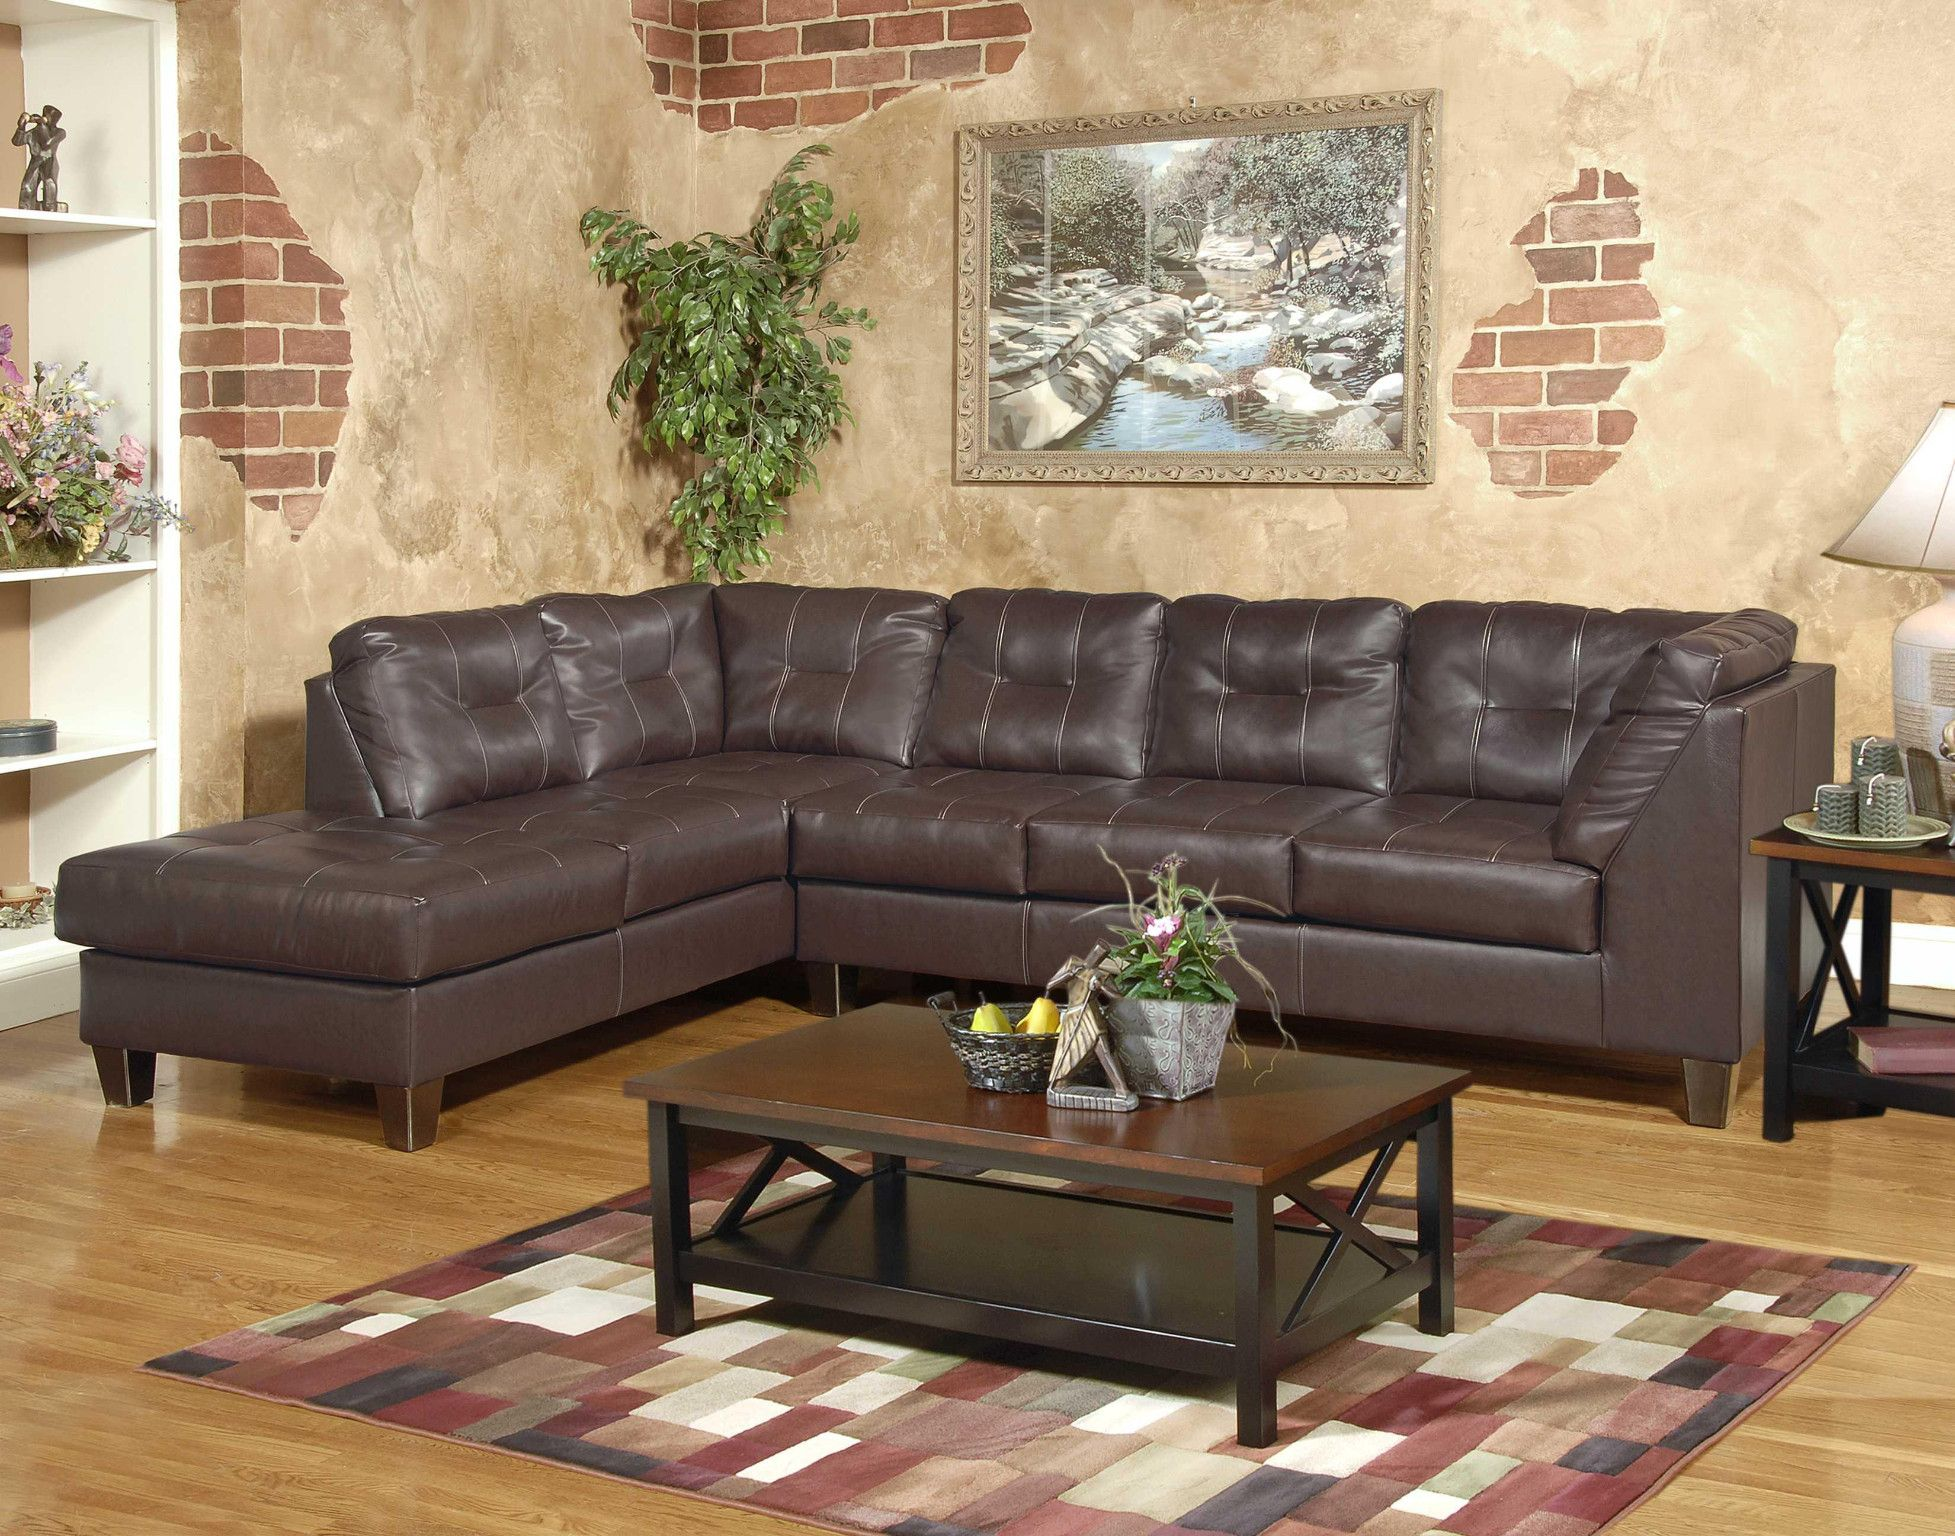 Sectional Sofa W Chaise Shown In San Marino Chocolate Also Available In Padded Walnut And Sectional Sofa Sectional Sofas Living Room Sectional Sofa Couch